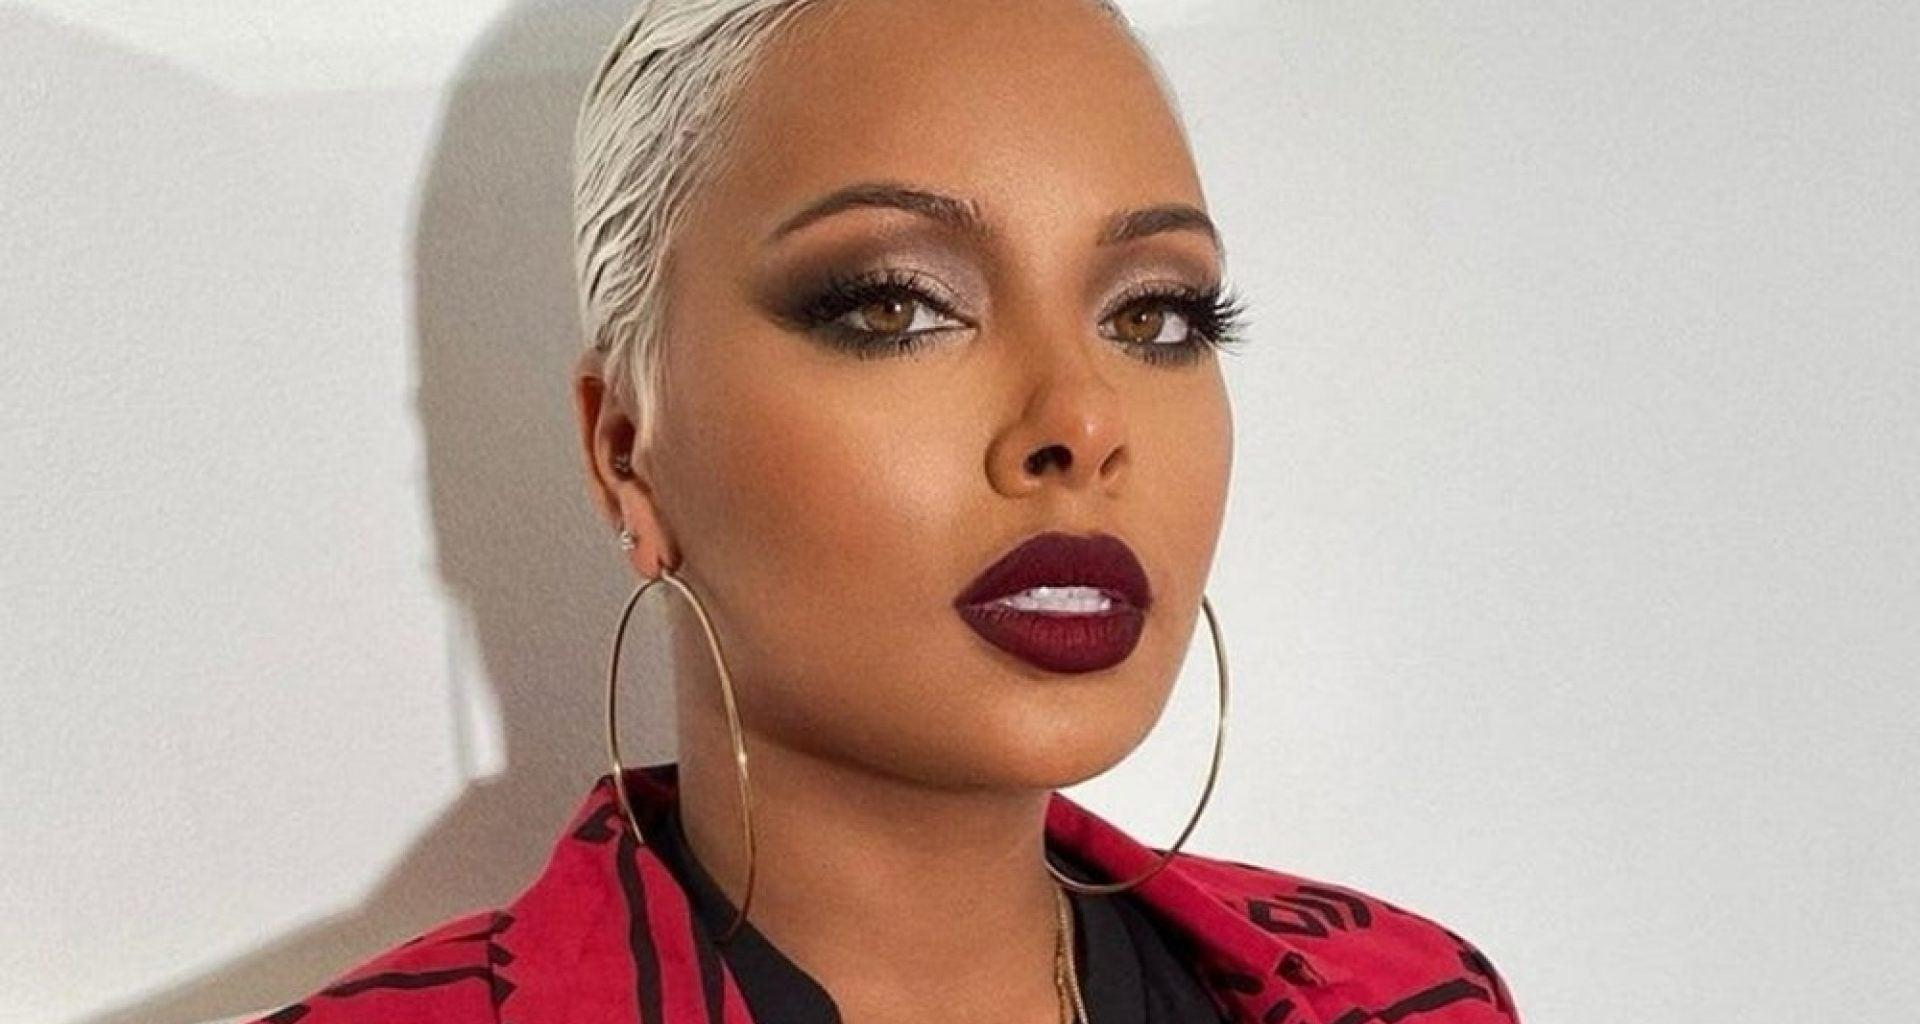 Eva Marcille Promotes This Controversial Message From The BLM Movement